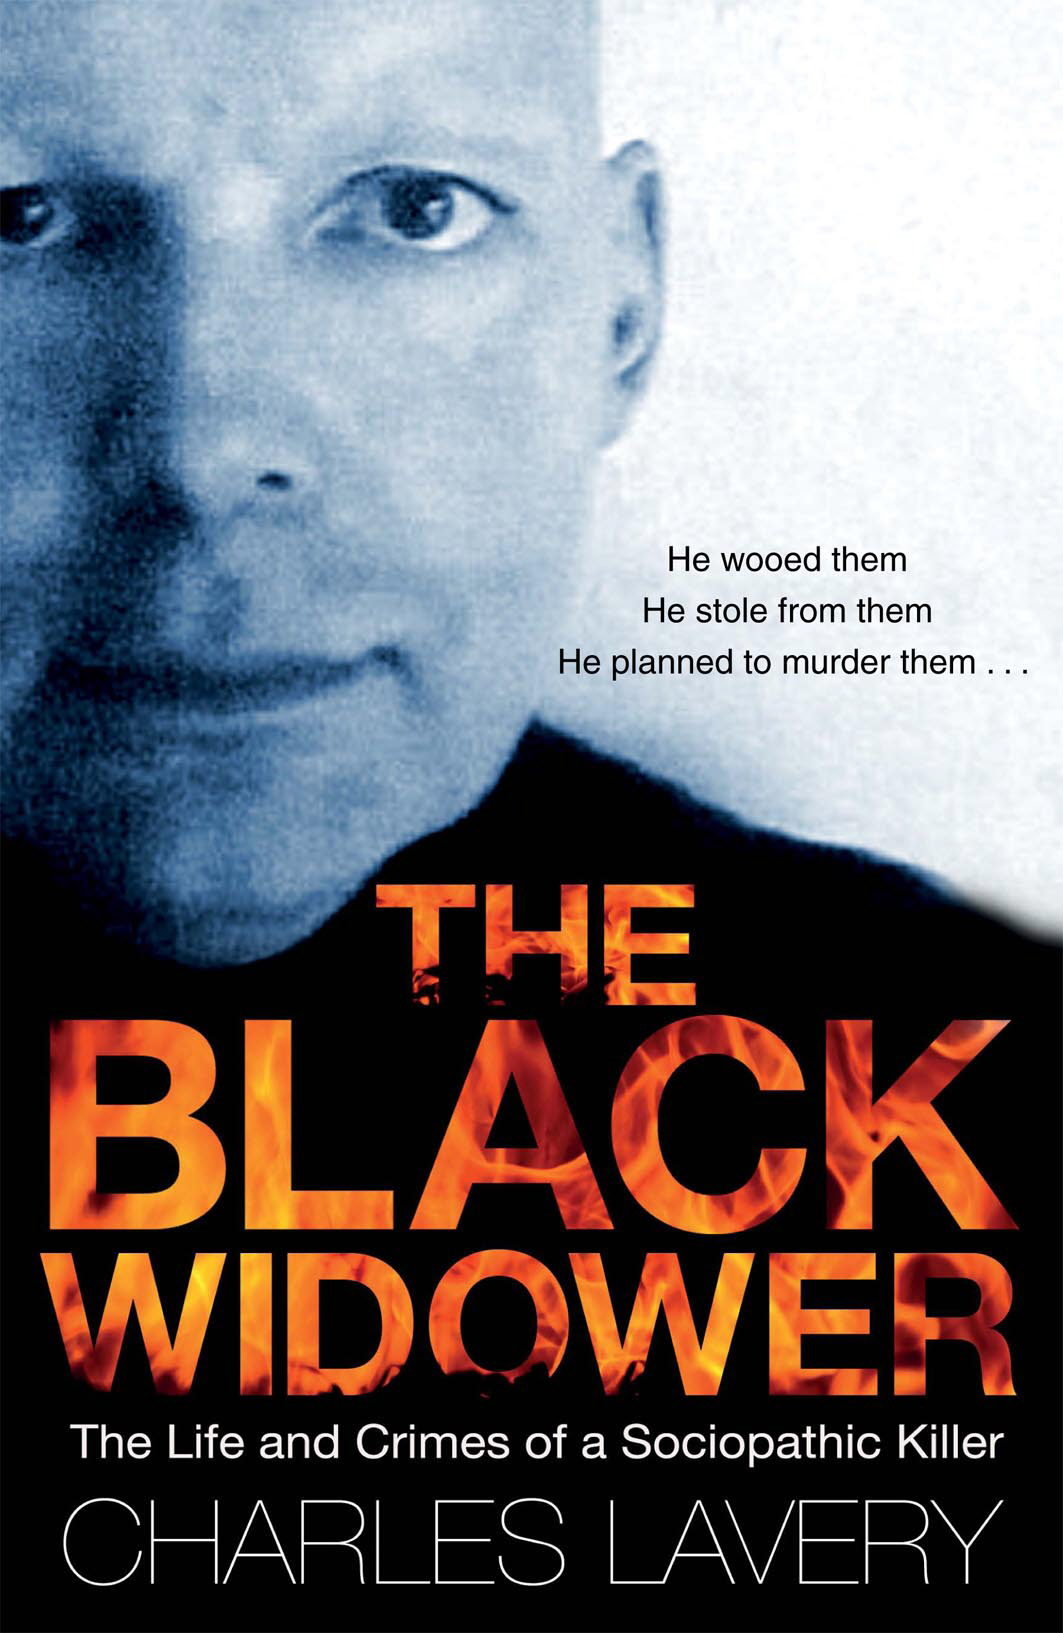 The Black Widower The Life and Crimes of a Sociopathic Killer